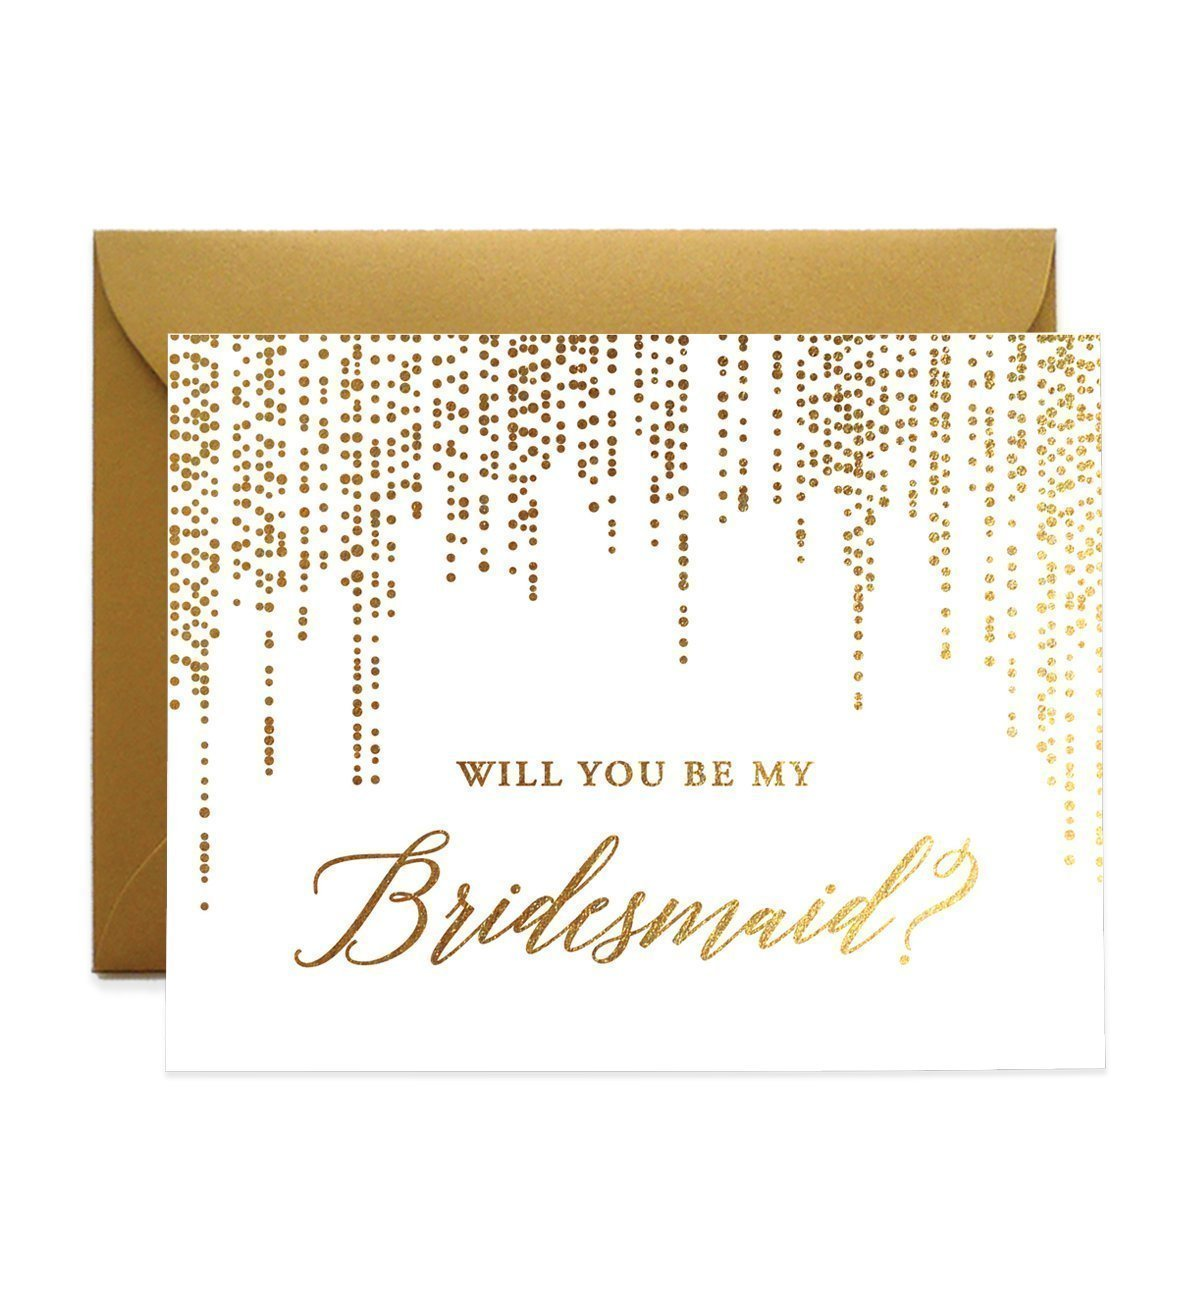 Gold Foil Bridesmaid Proposal Cards Will You Be My Brides maid Box Pack (Set of 5) Goldfoil Foiled Five Engaged Wedding Bridal Party Cards Antique Gold Shimmer Metallic Envelopes CW0006-1